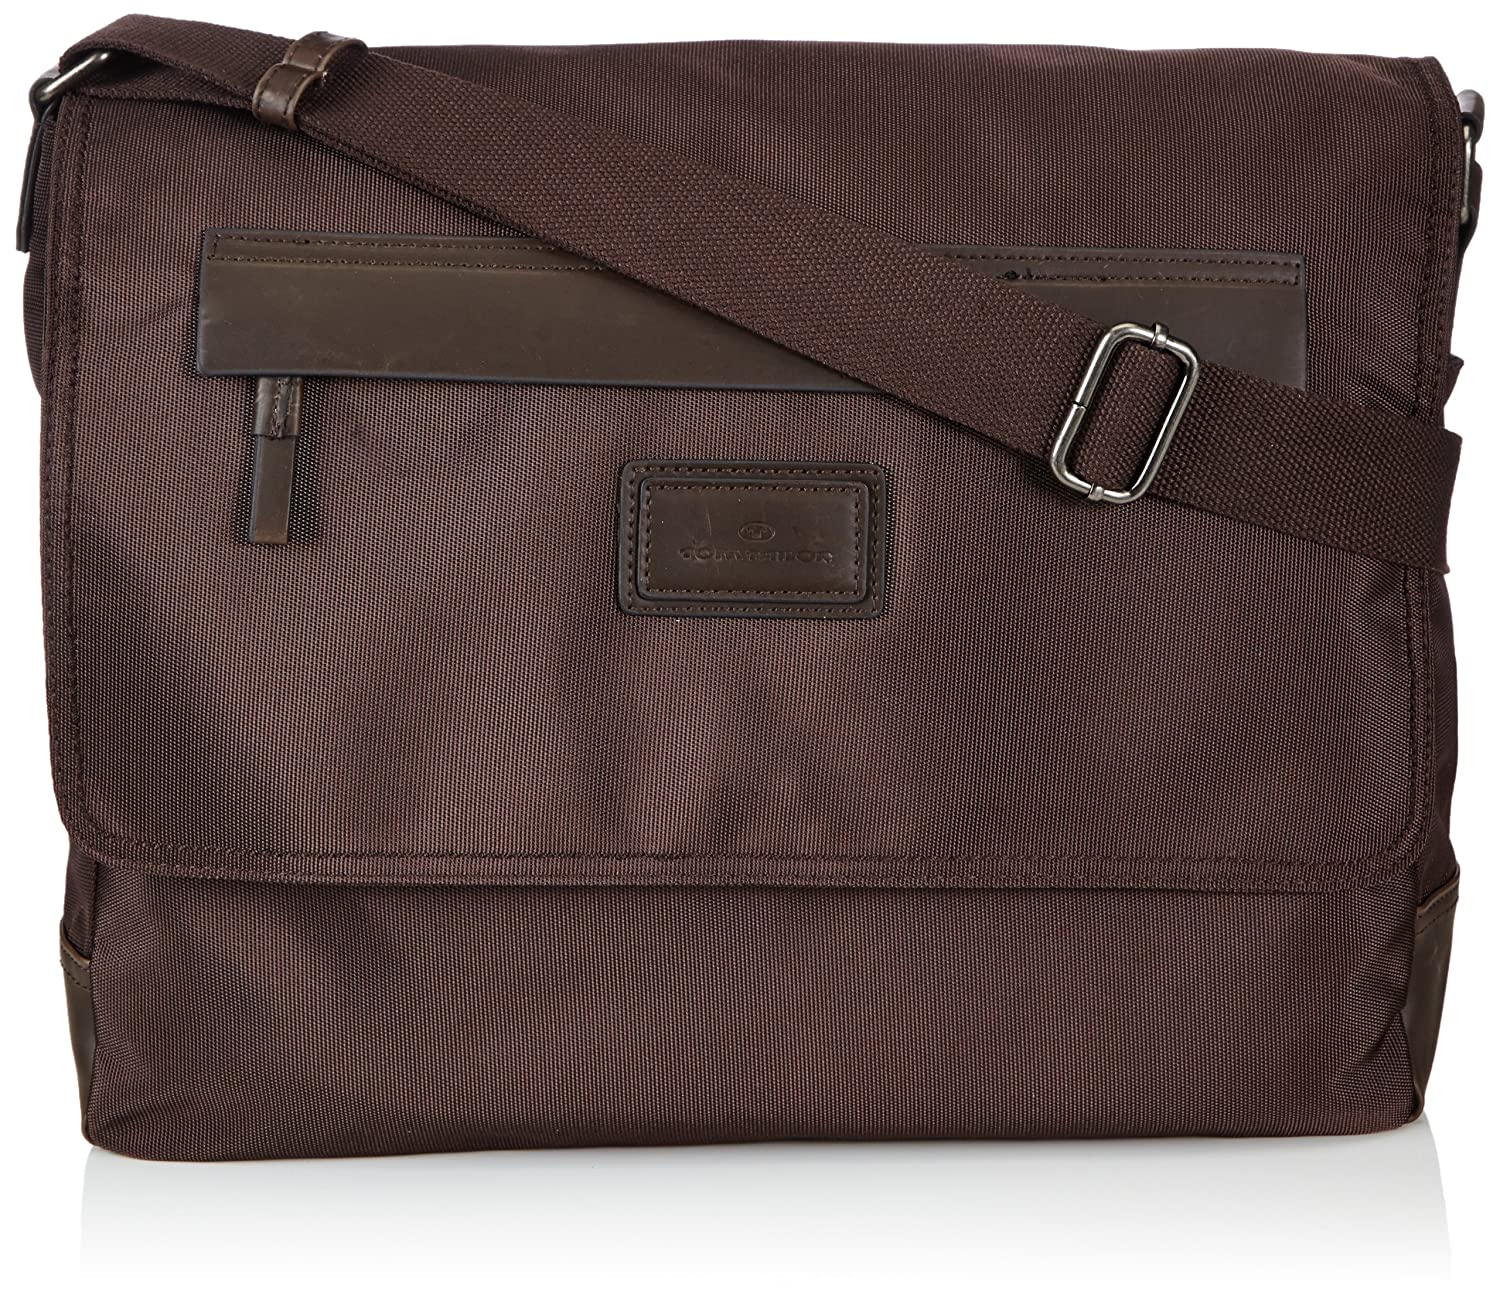 Tom Tailor Acc Unisex - Adult LIVERPOOL Messenger Shoulder Bag